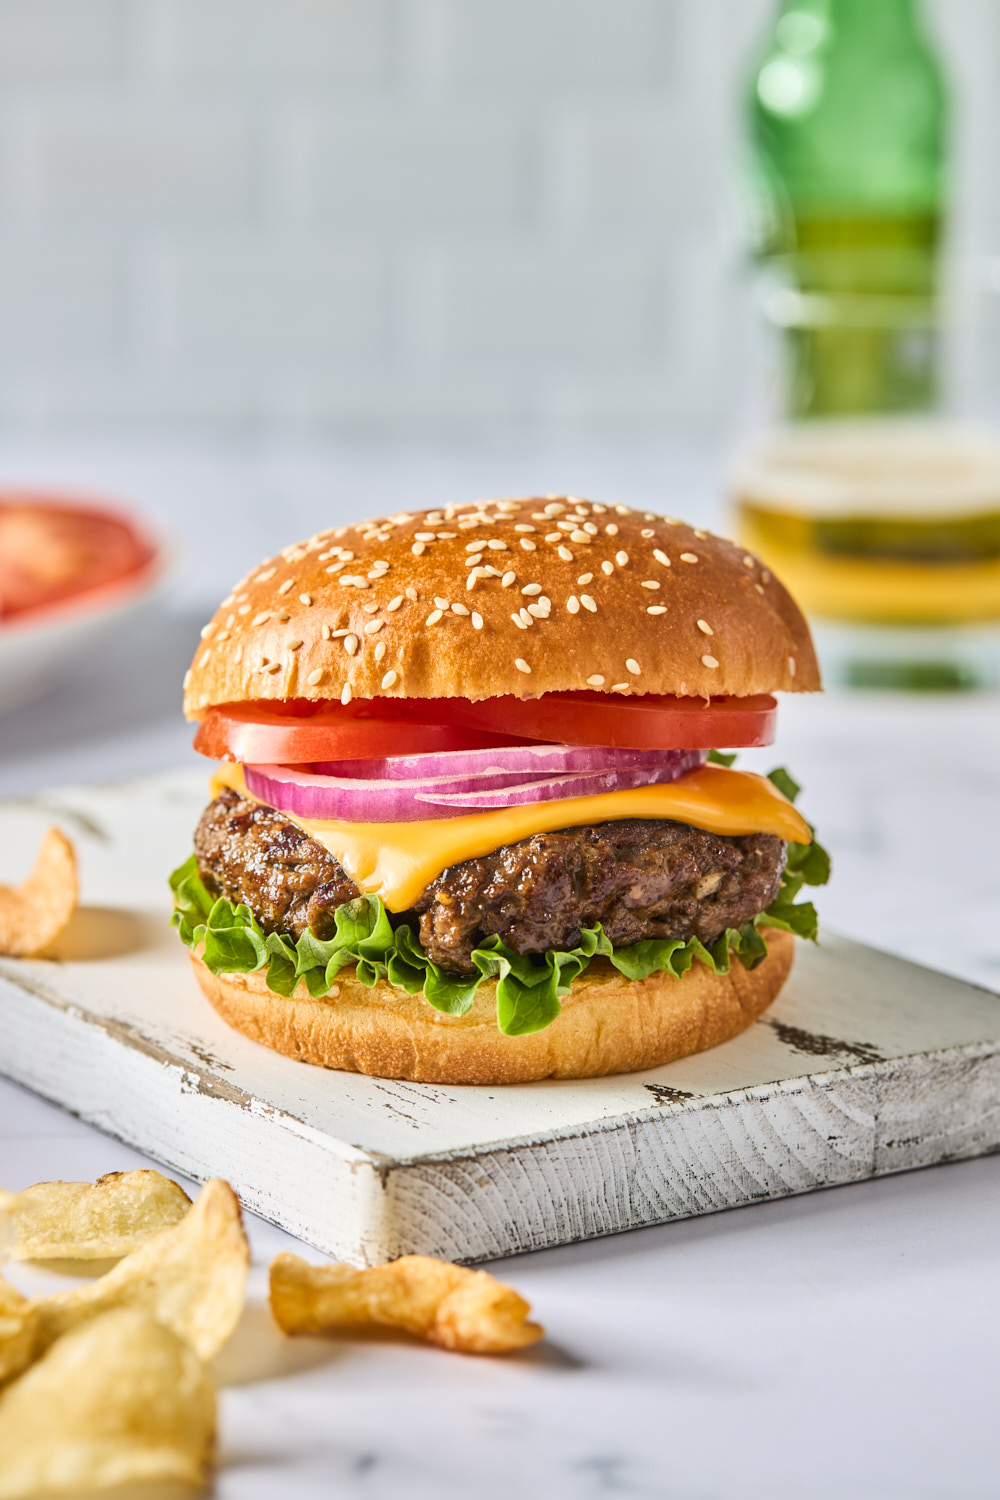 Classic Grilled Cheeseburger